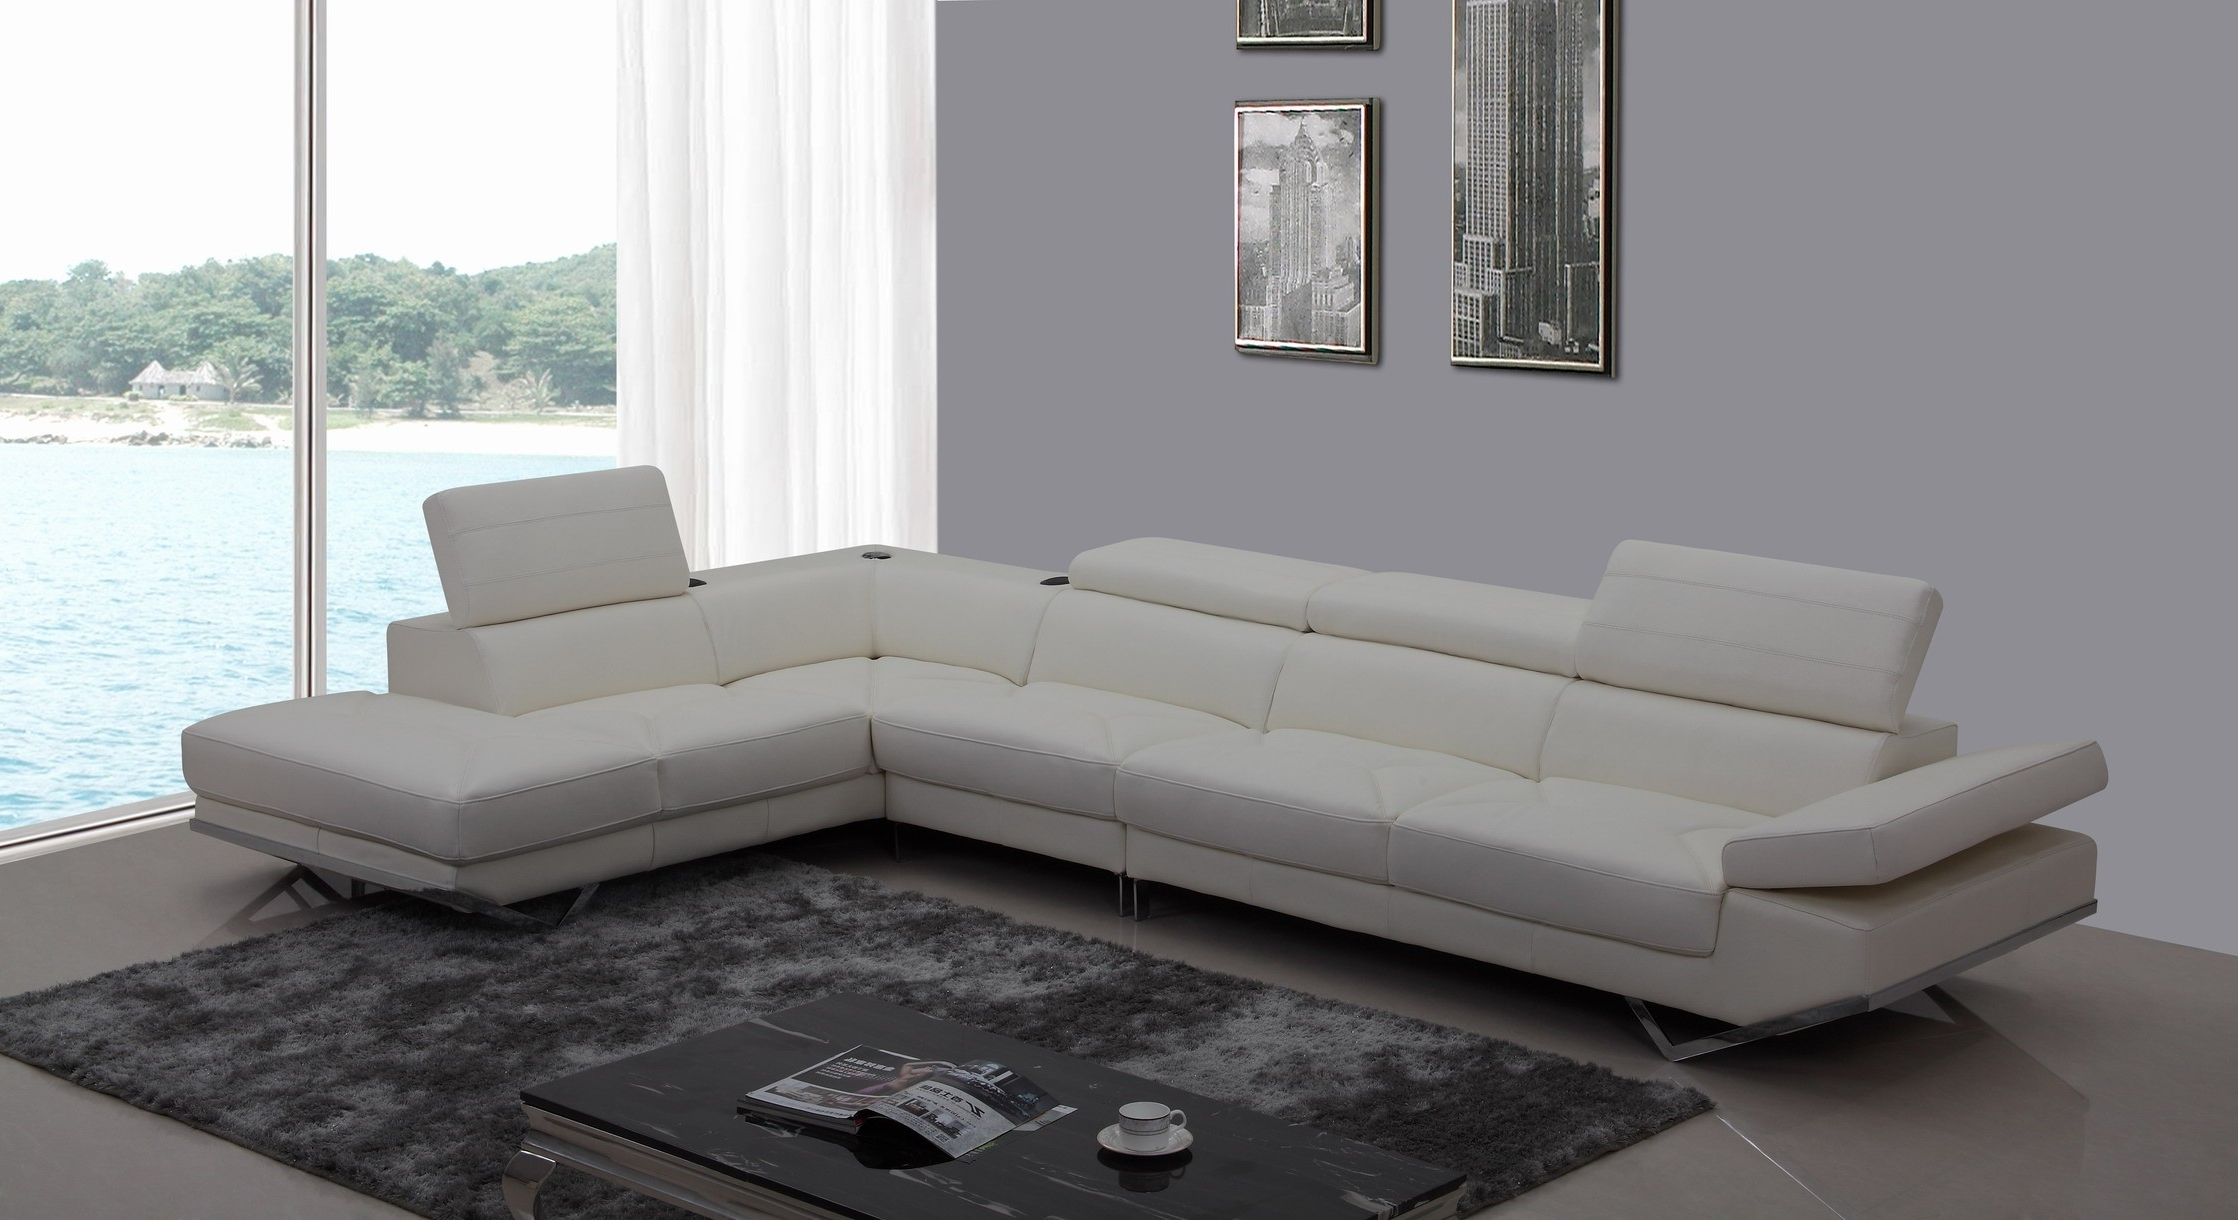 Sofa On Sale Ebay 20 Ideas Of Sectional Sofas At Ebay